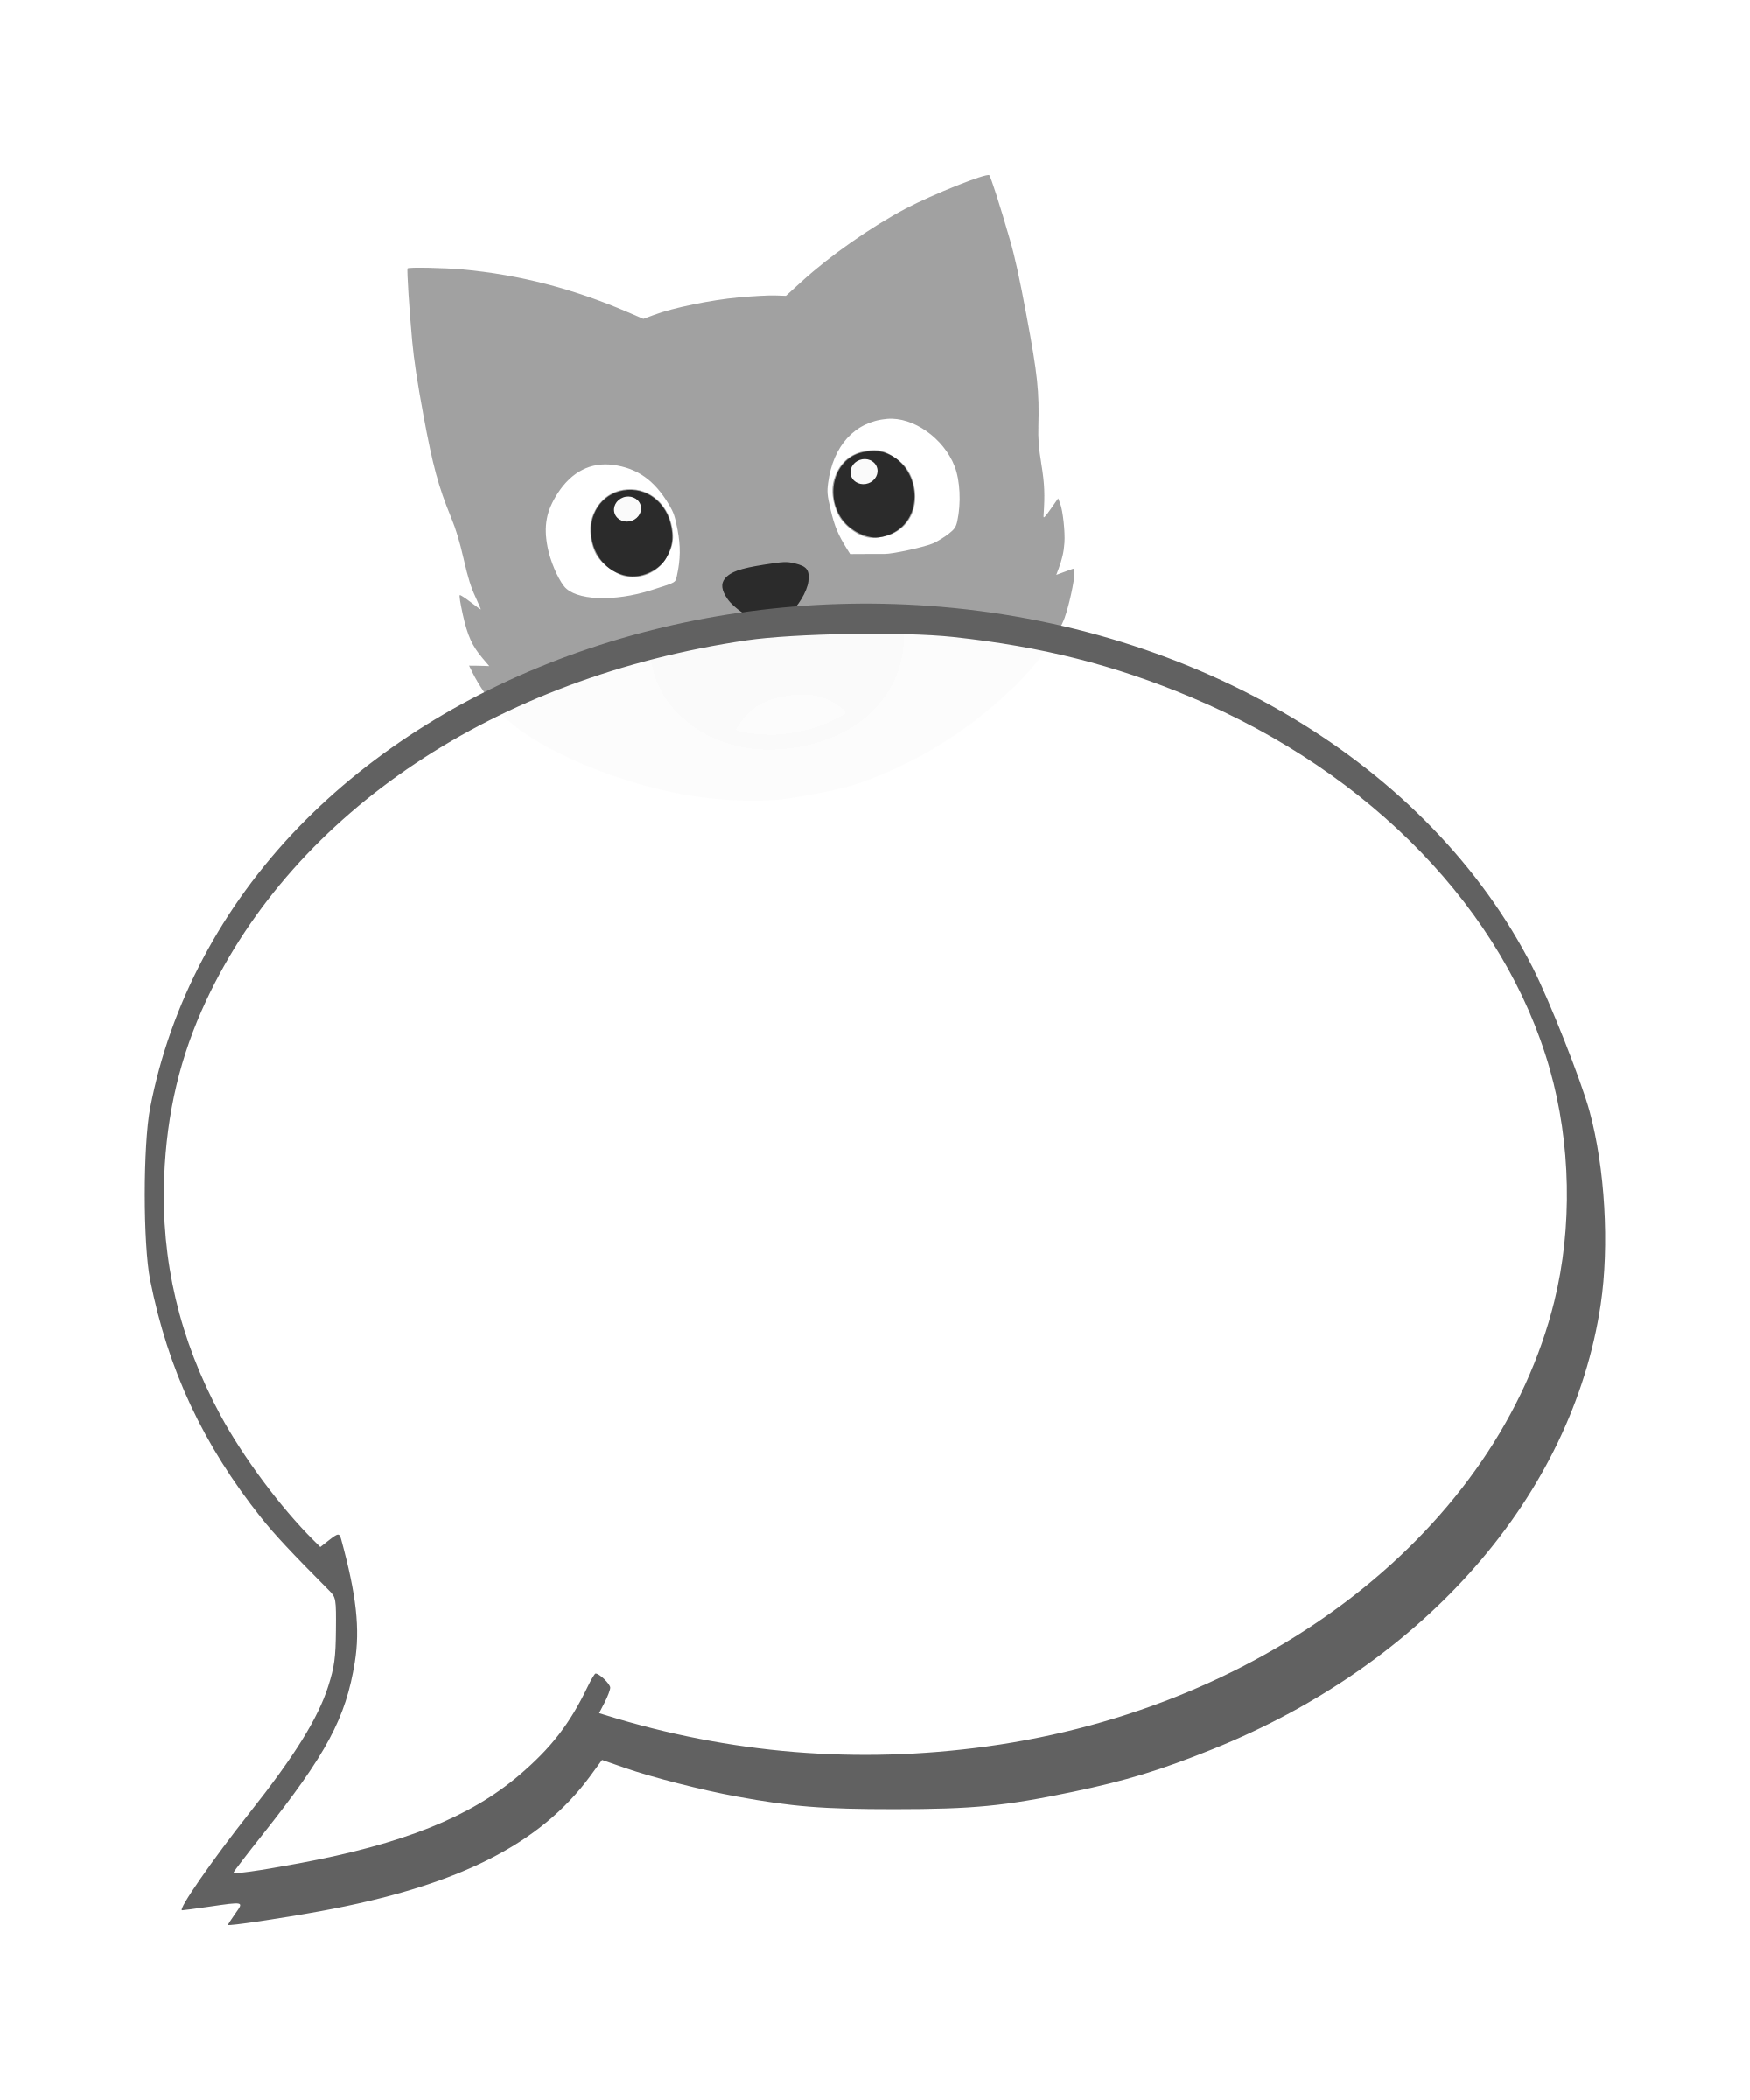 Clipart balloon cat. Speech with big image